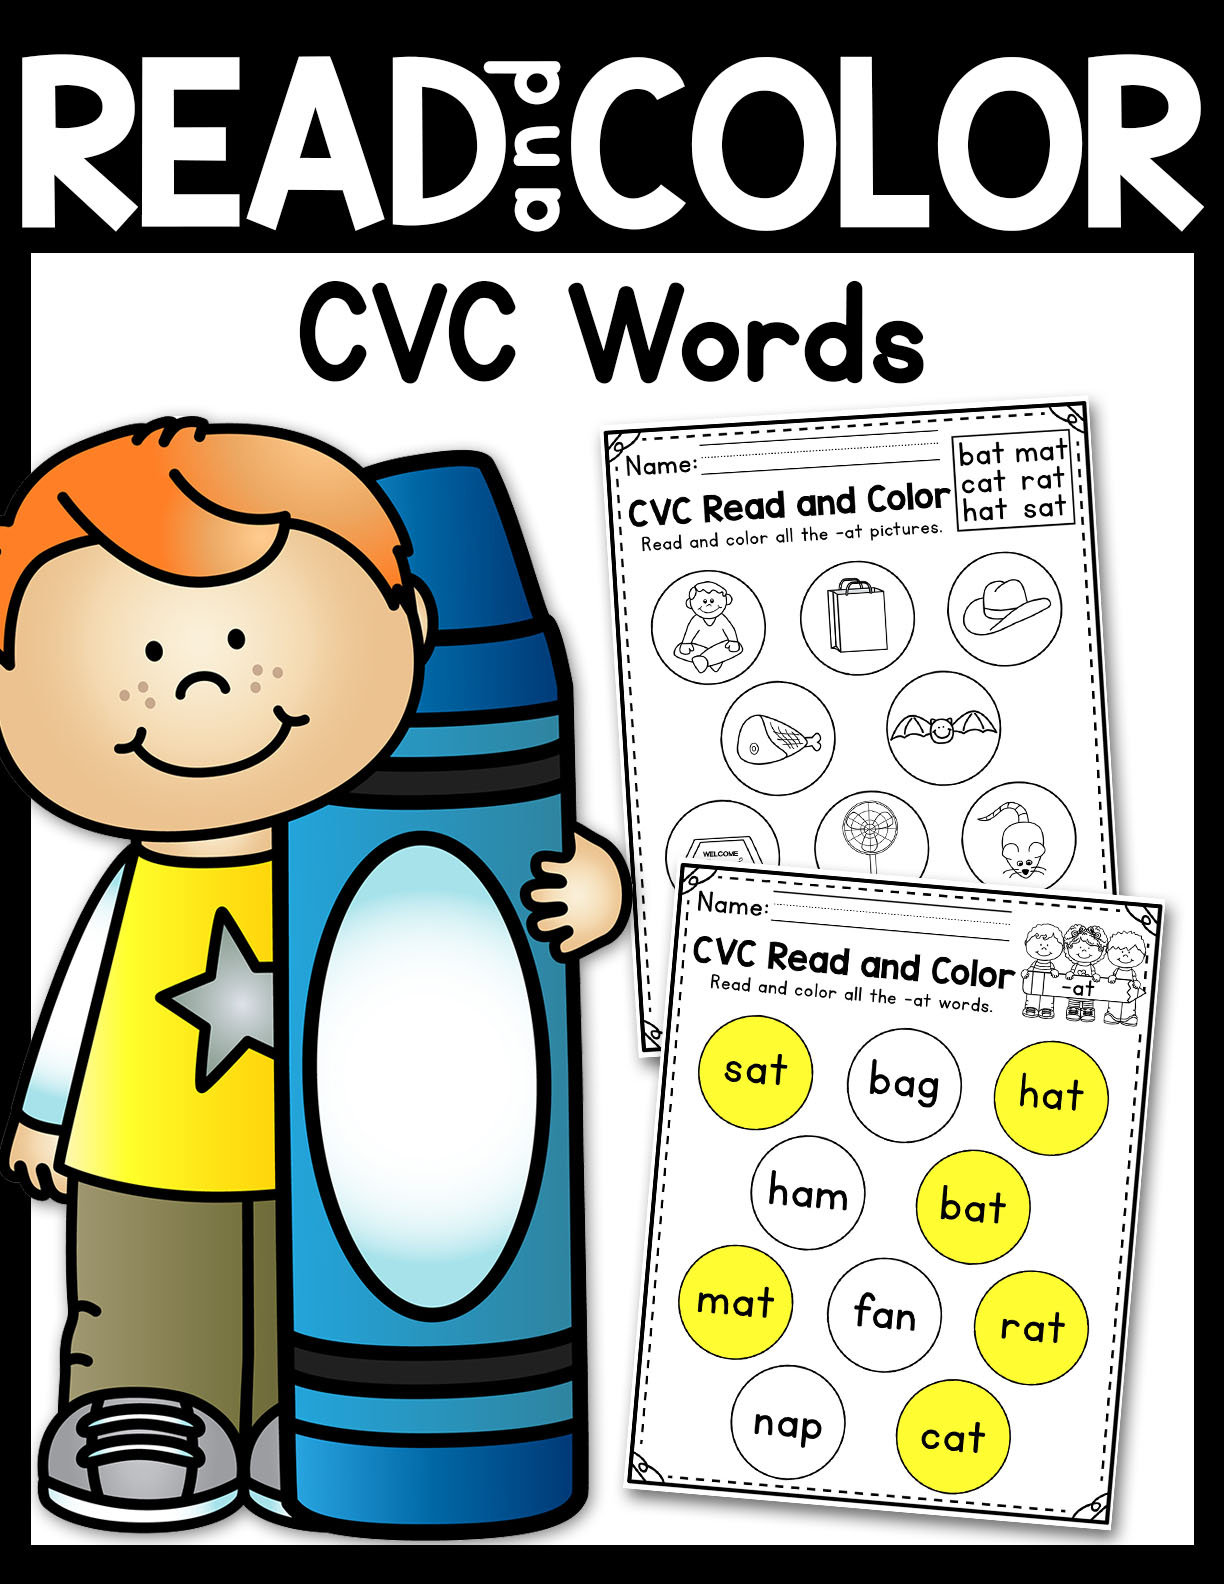 Read and Color CVC Words Worksheets